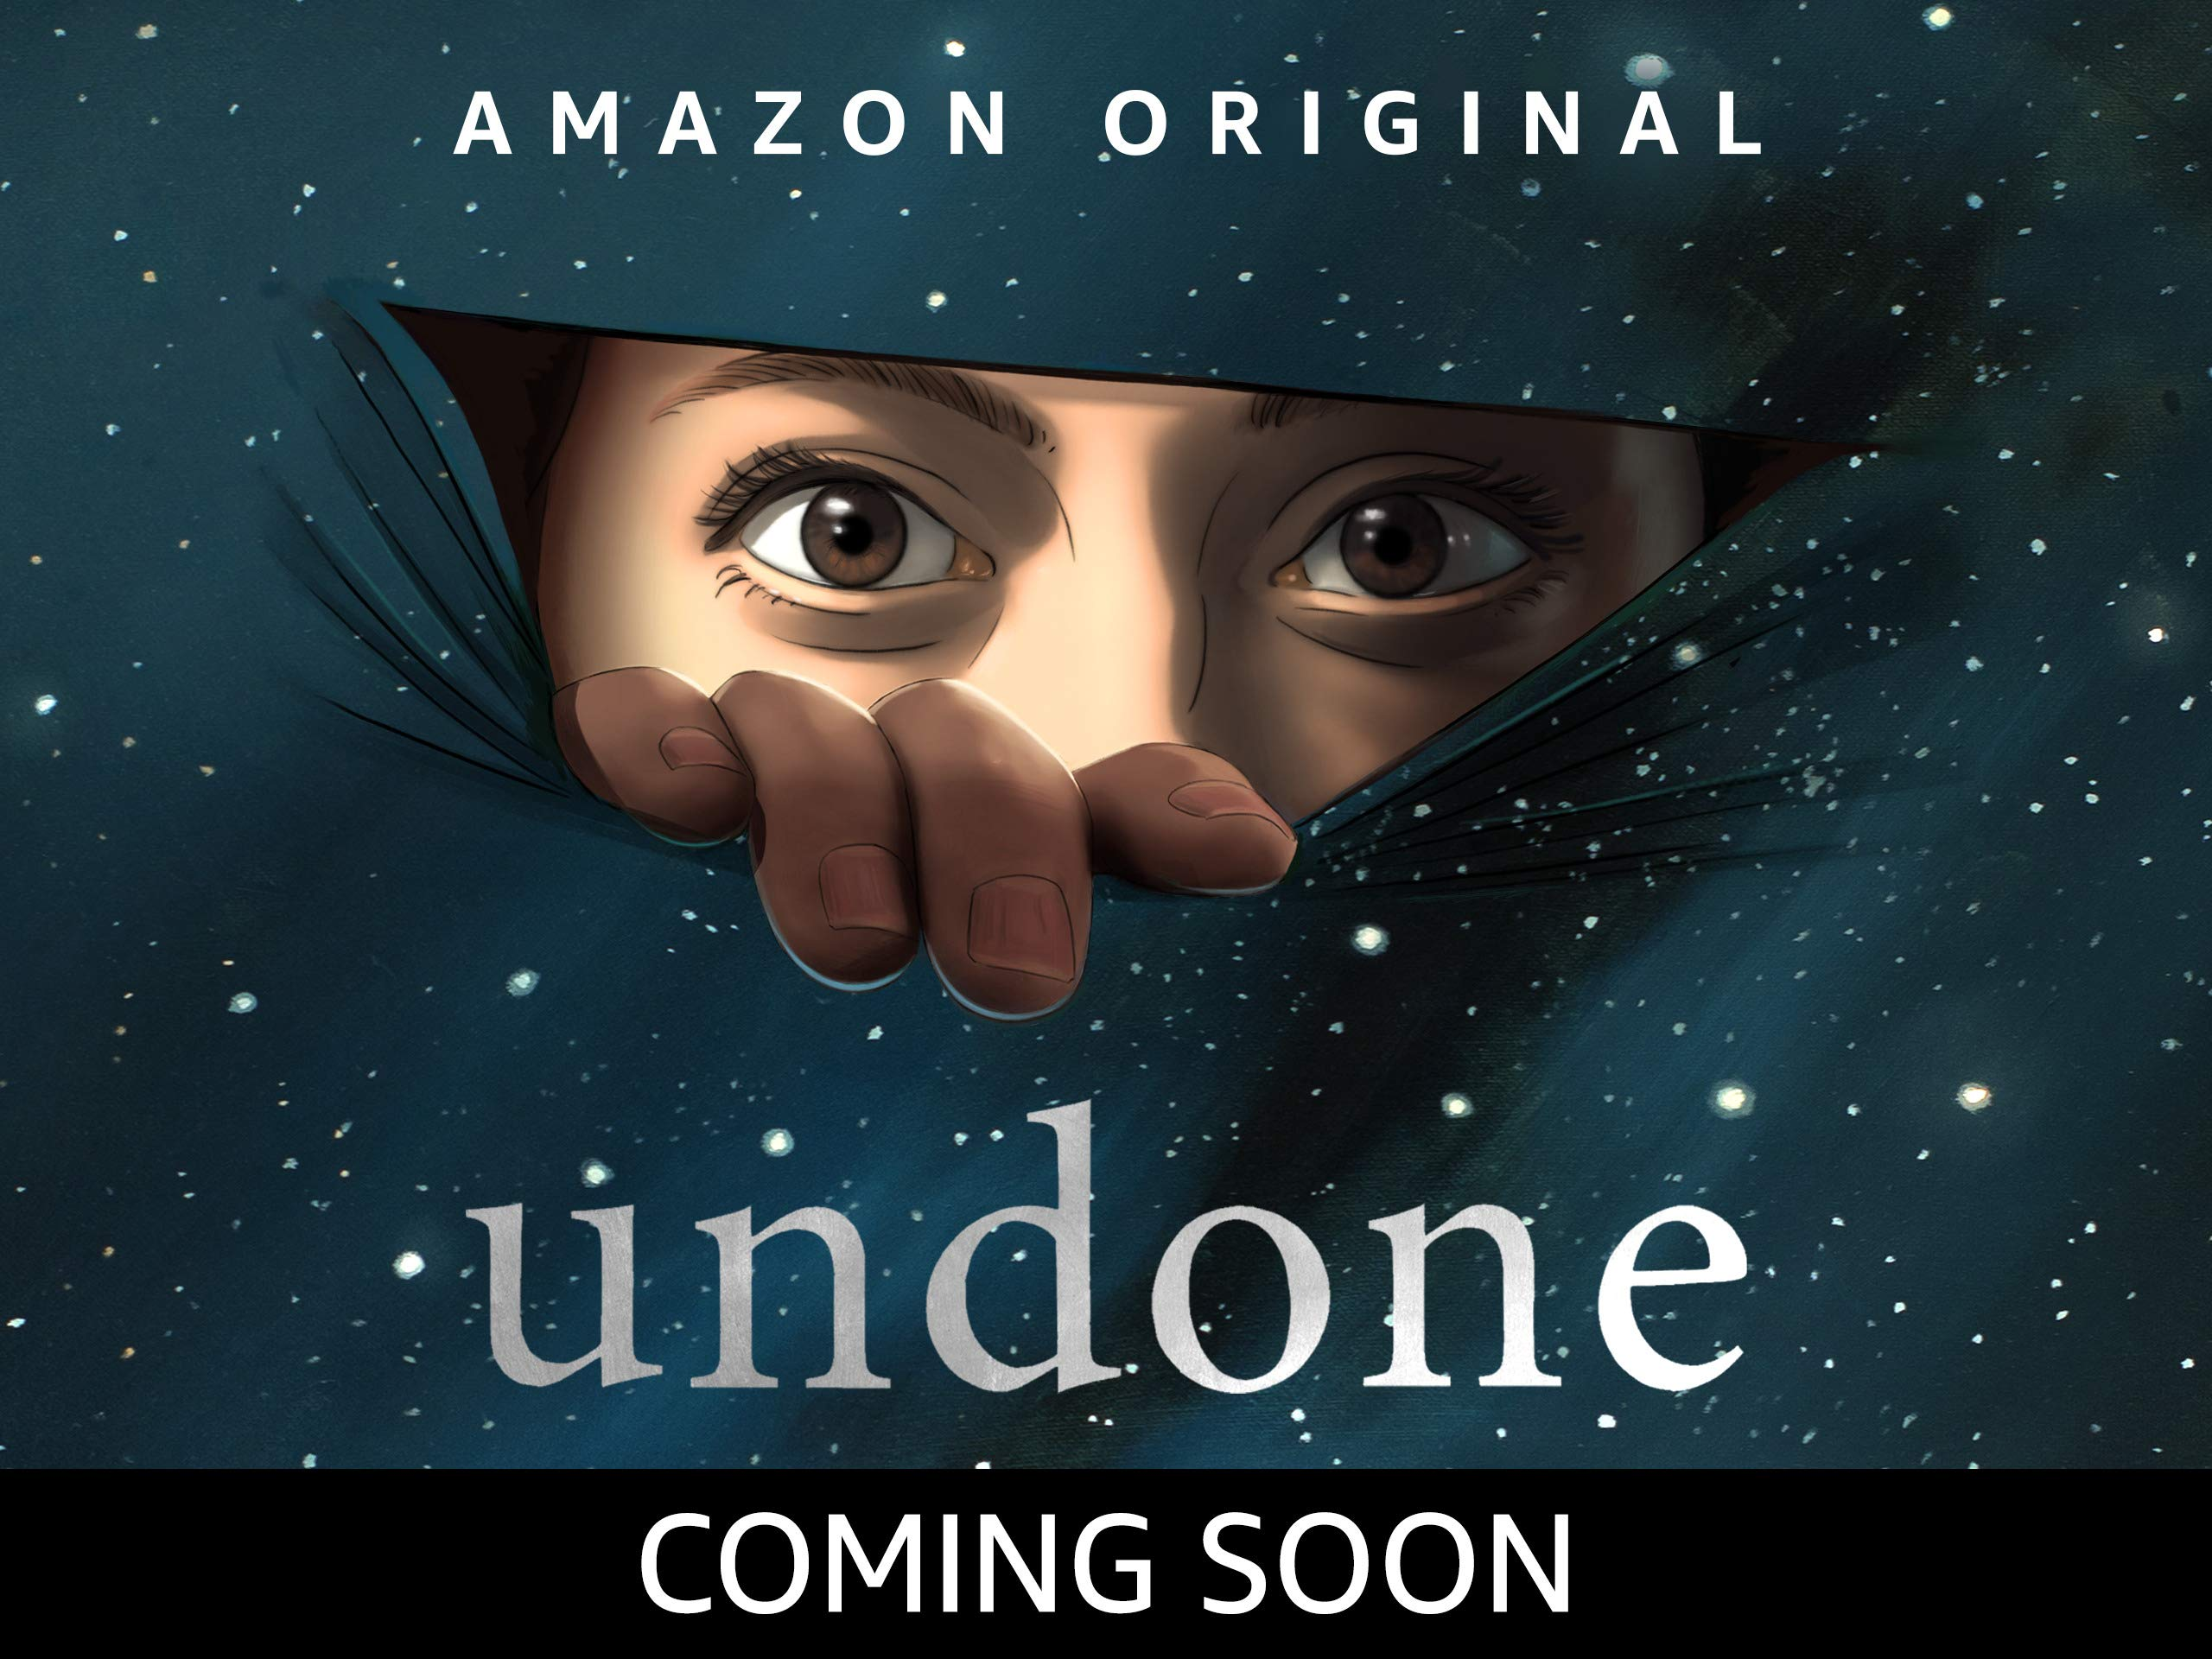 Undone Season 1 coming soon to Prime